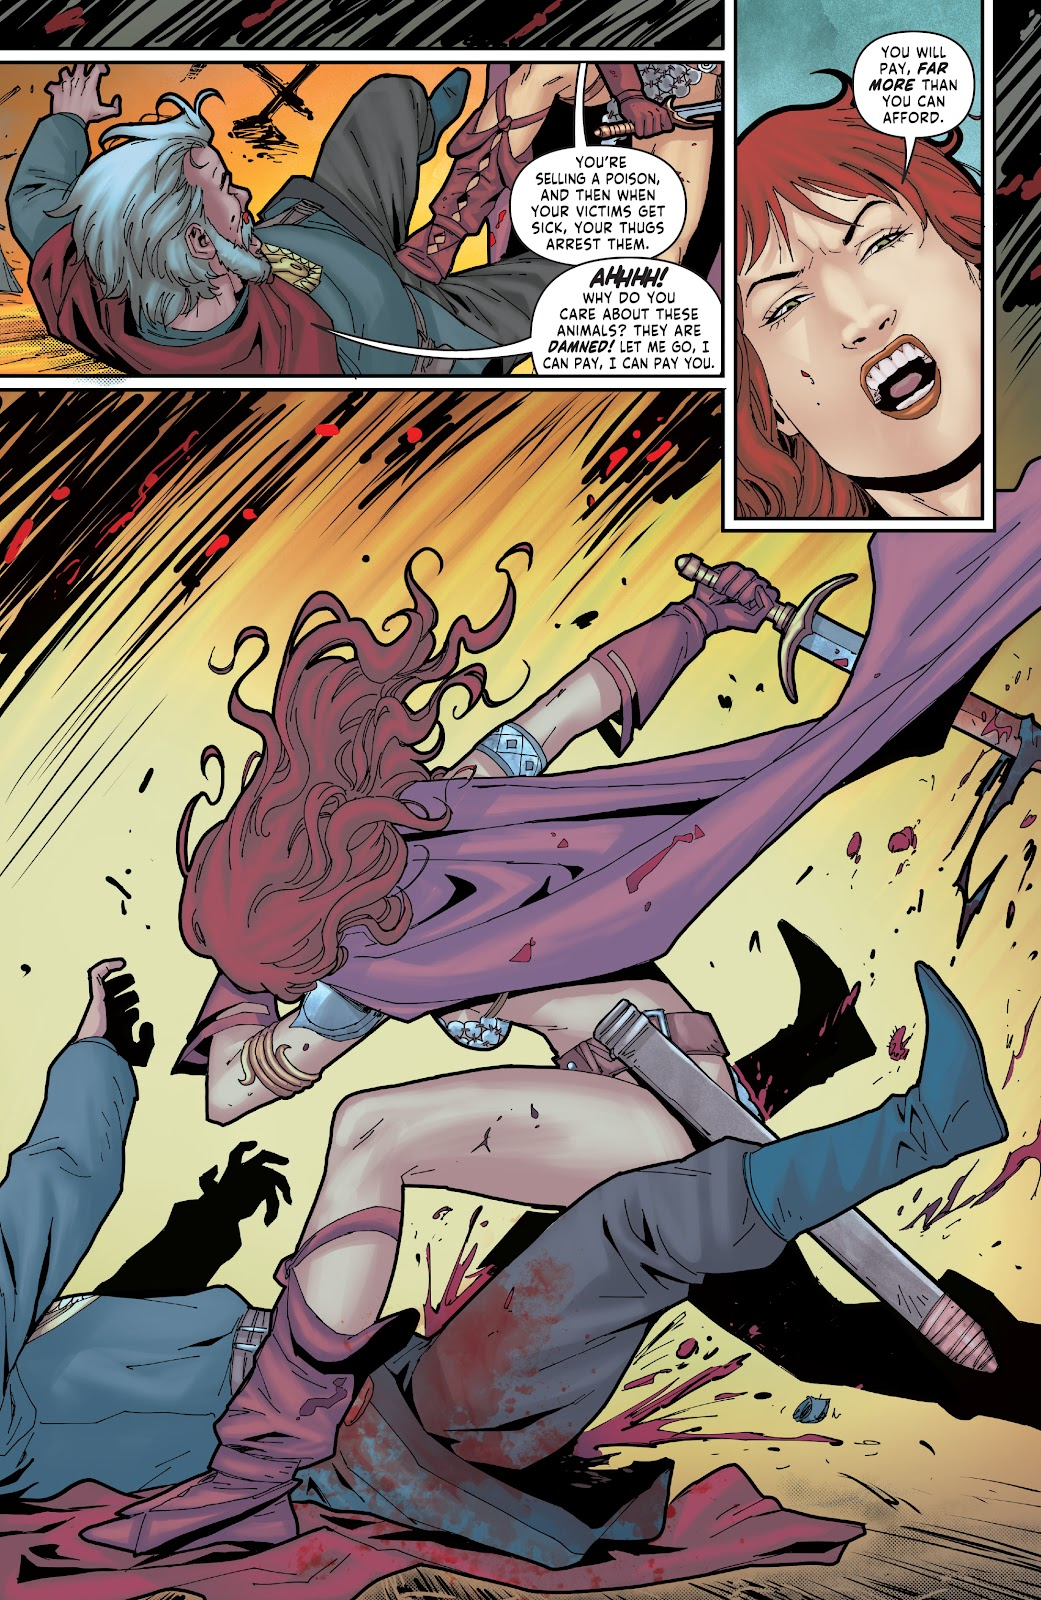 Red Sonja: The Price of Blood issue 2 - Page 27